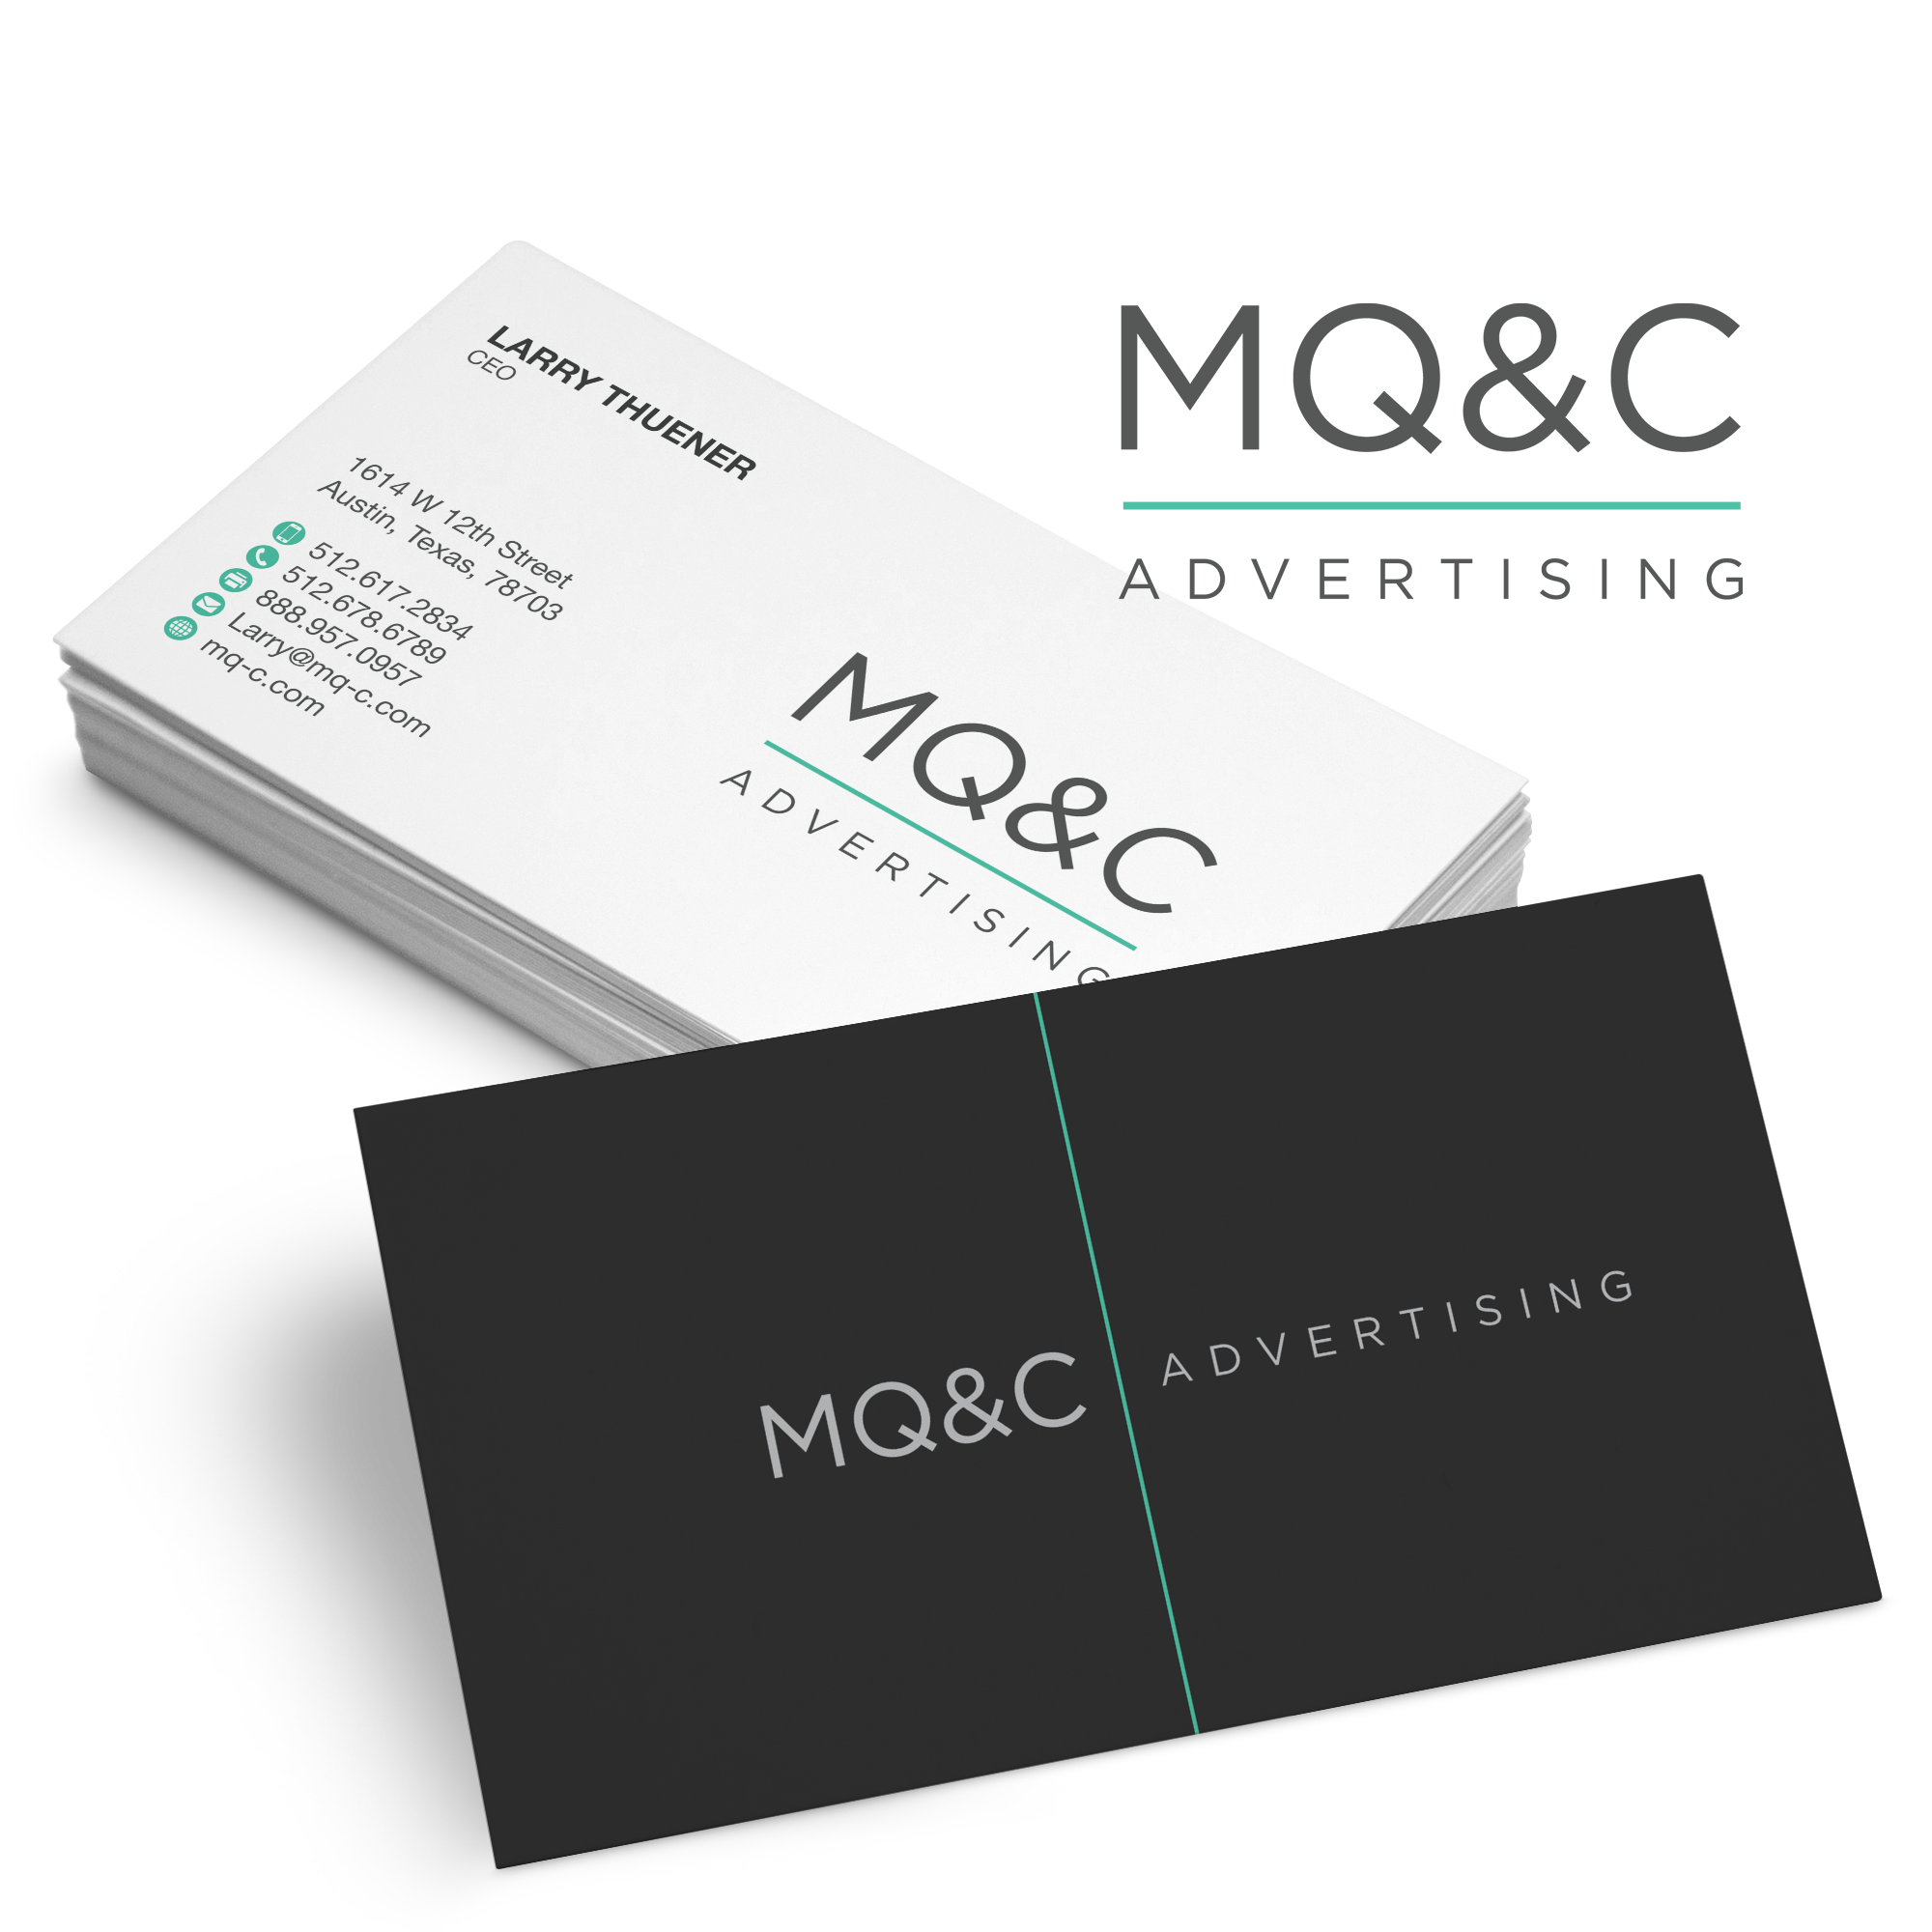 Business Card Logos Get A Custom Logo for Business Cards